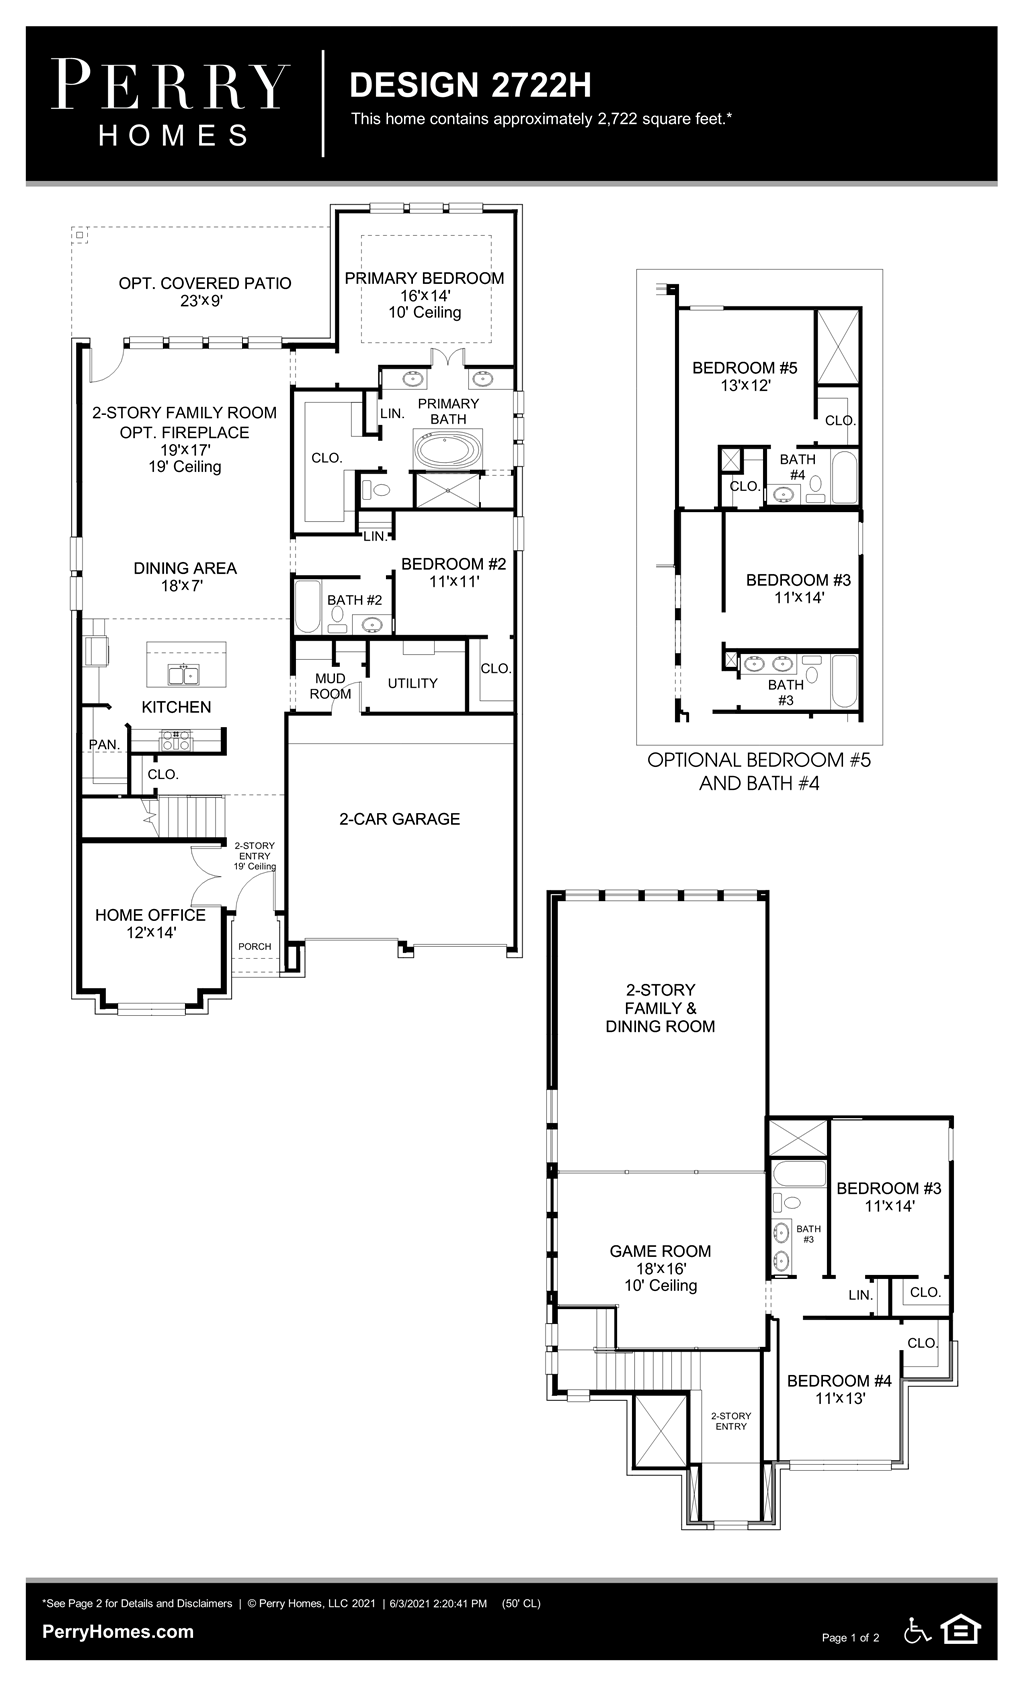 Floor Plan for 2722H